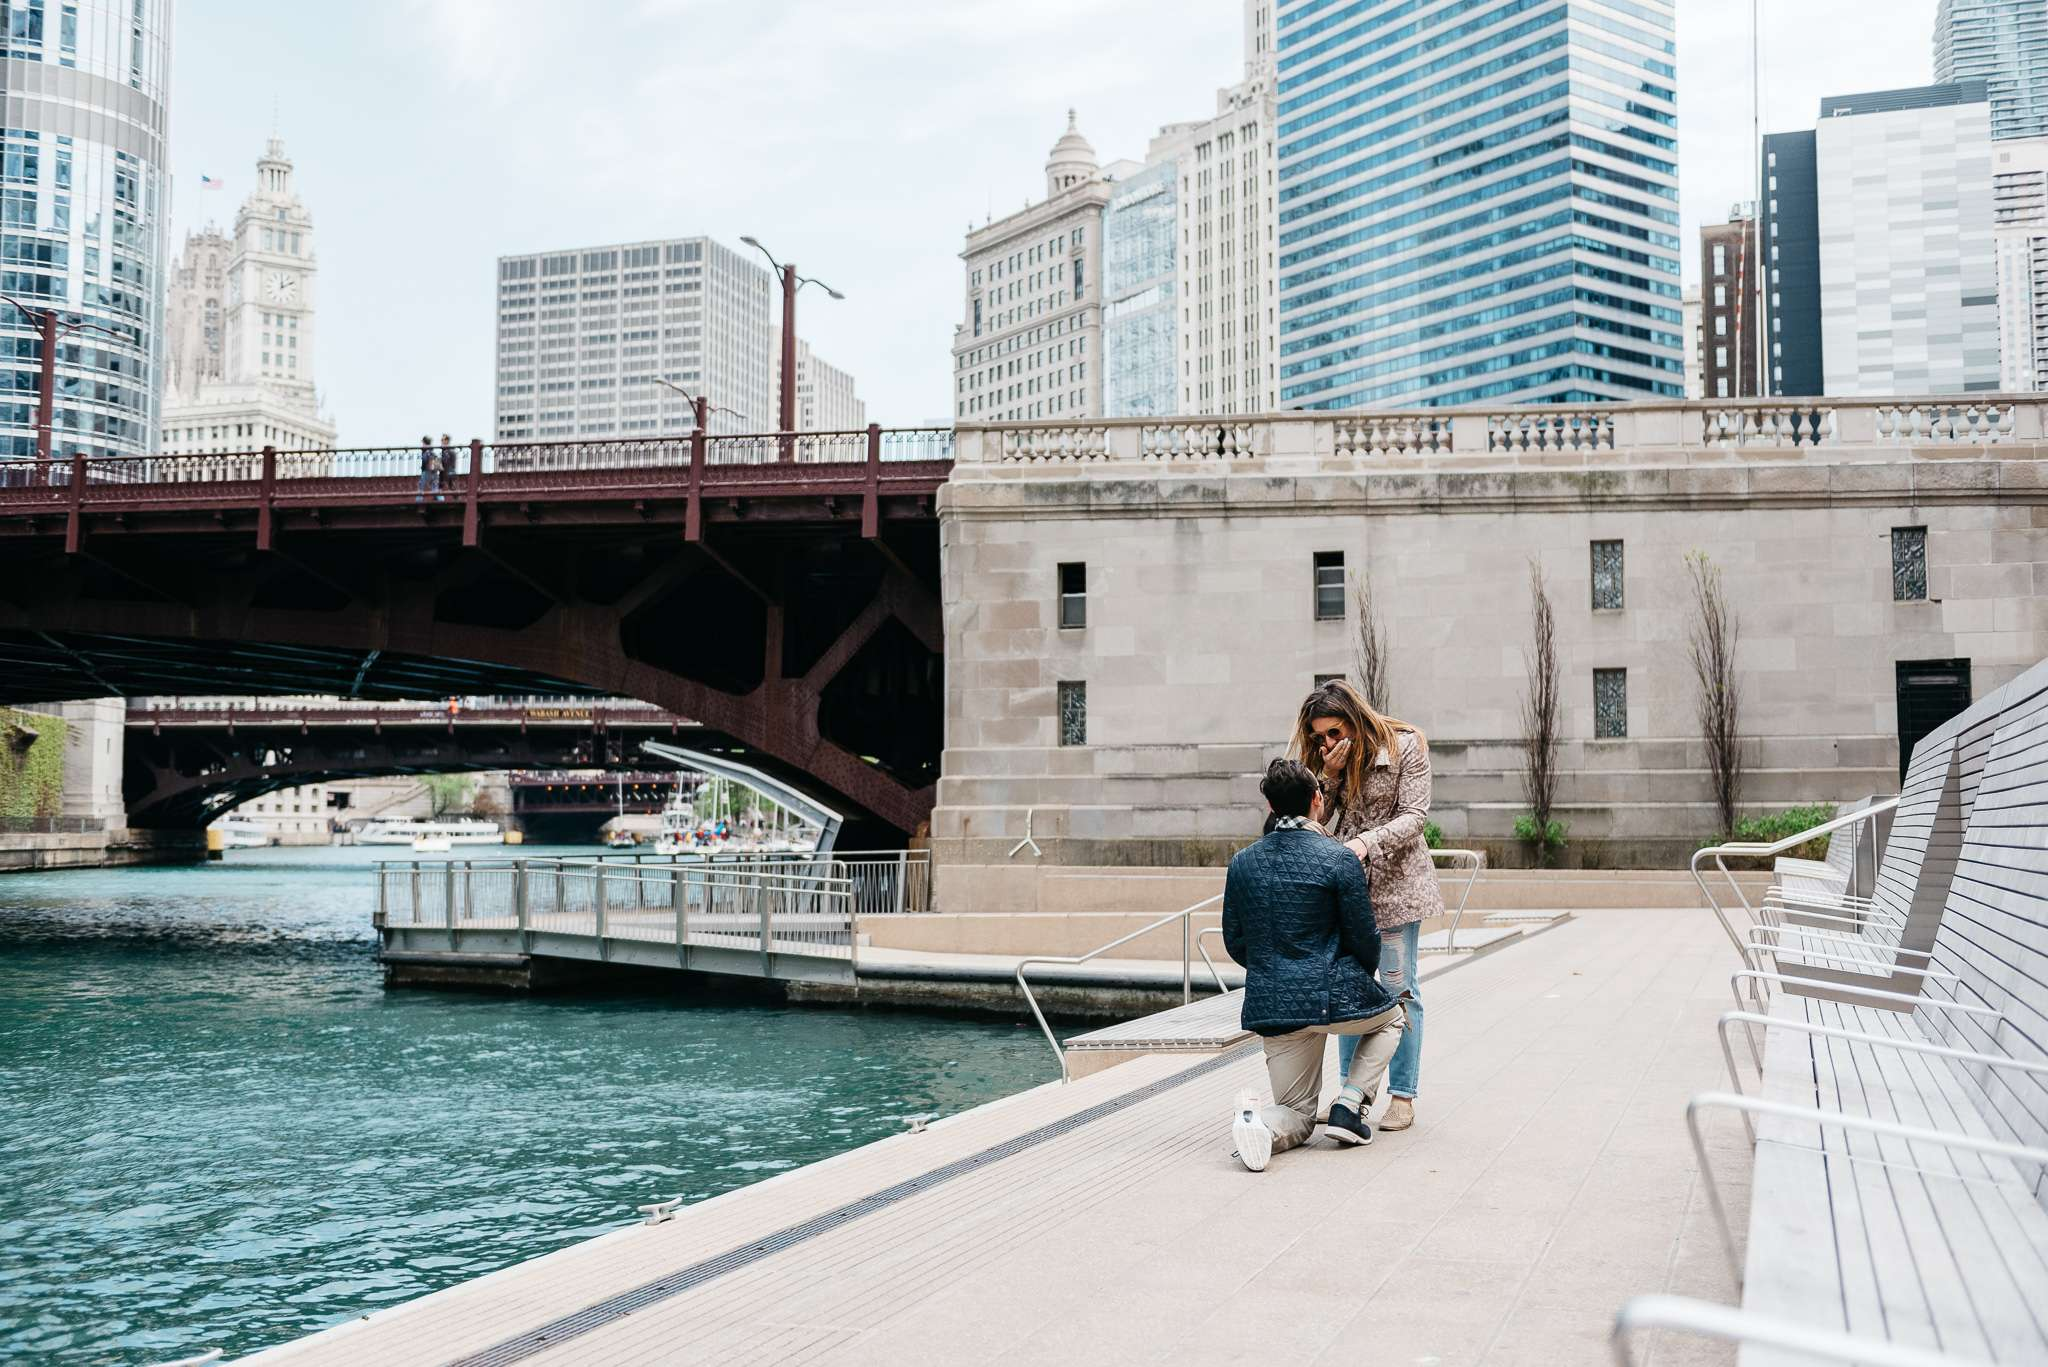 proposal, city winery, chicago, riverwalk, river, lake michigan, boat, goodman theater, engagement, surprise, chicago engagement photographer, chicago blogger, proposal photographer, photographer, chicago wedding photographer, chicago elopement photographer